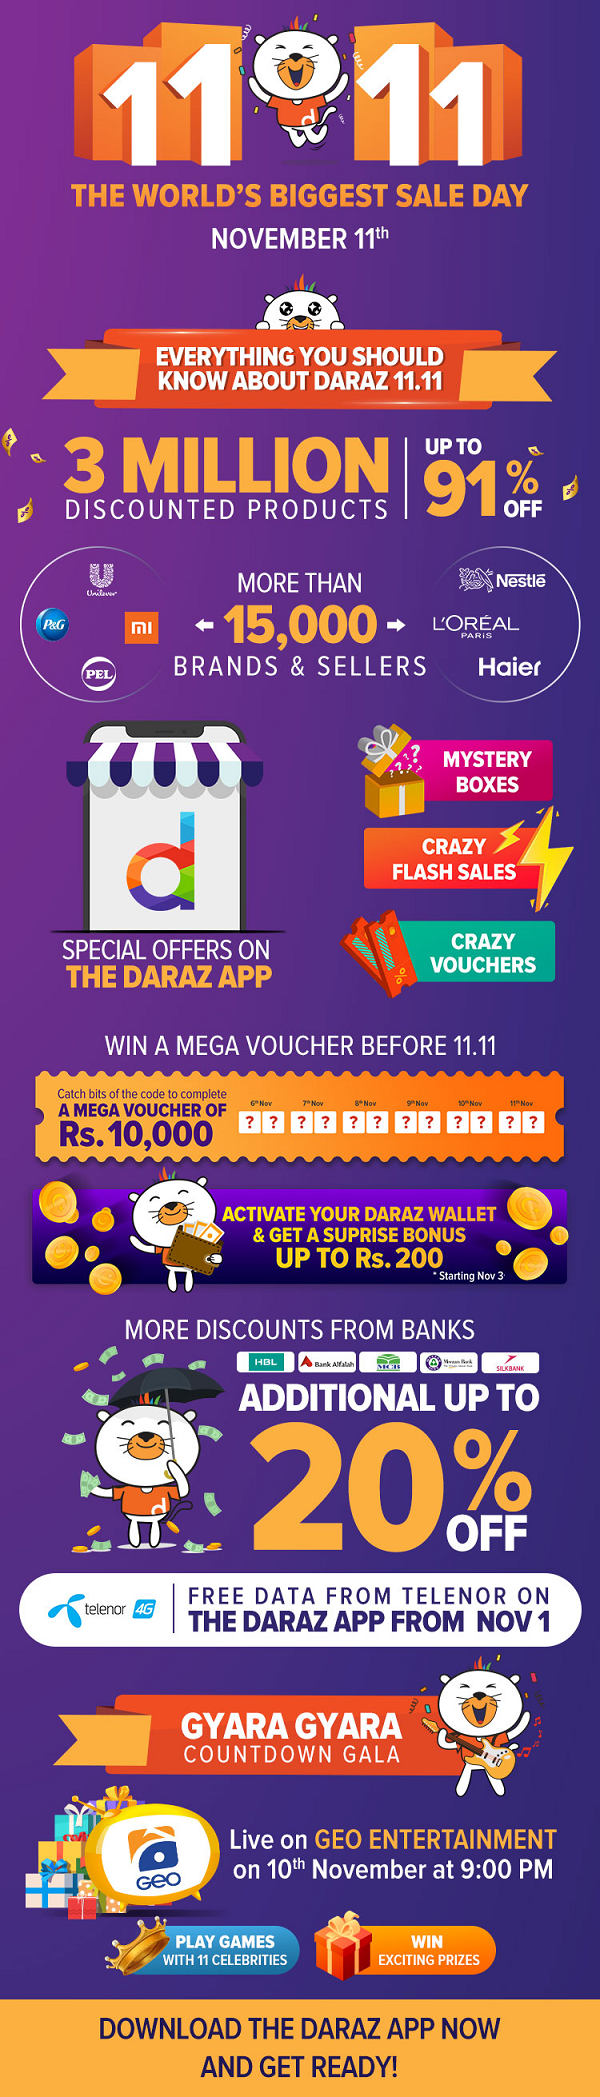 8 days till DARAZ 11.11 sale and how to make the most of it